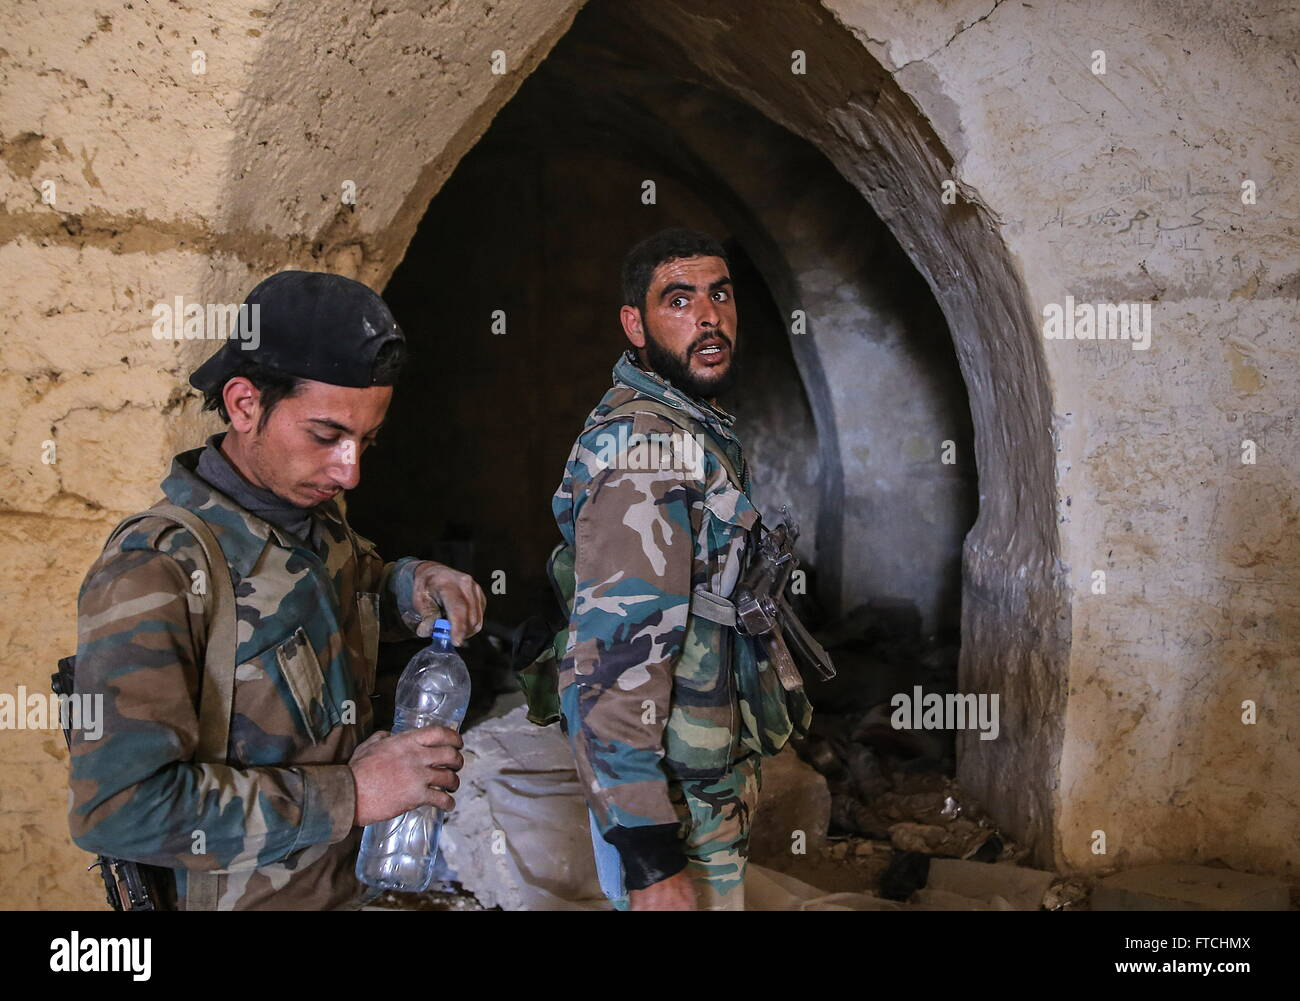 Palmyria, Syria. 26th Mar, 2016. Syrian government army soldiers in Fakhr al-Din al-Maani Citadel in Palmyra, a - Stock Image